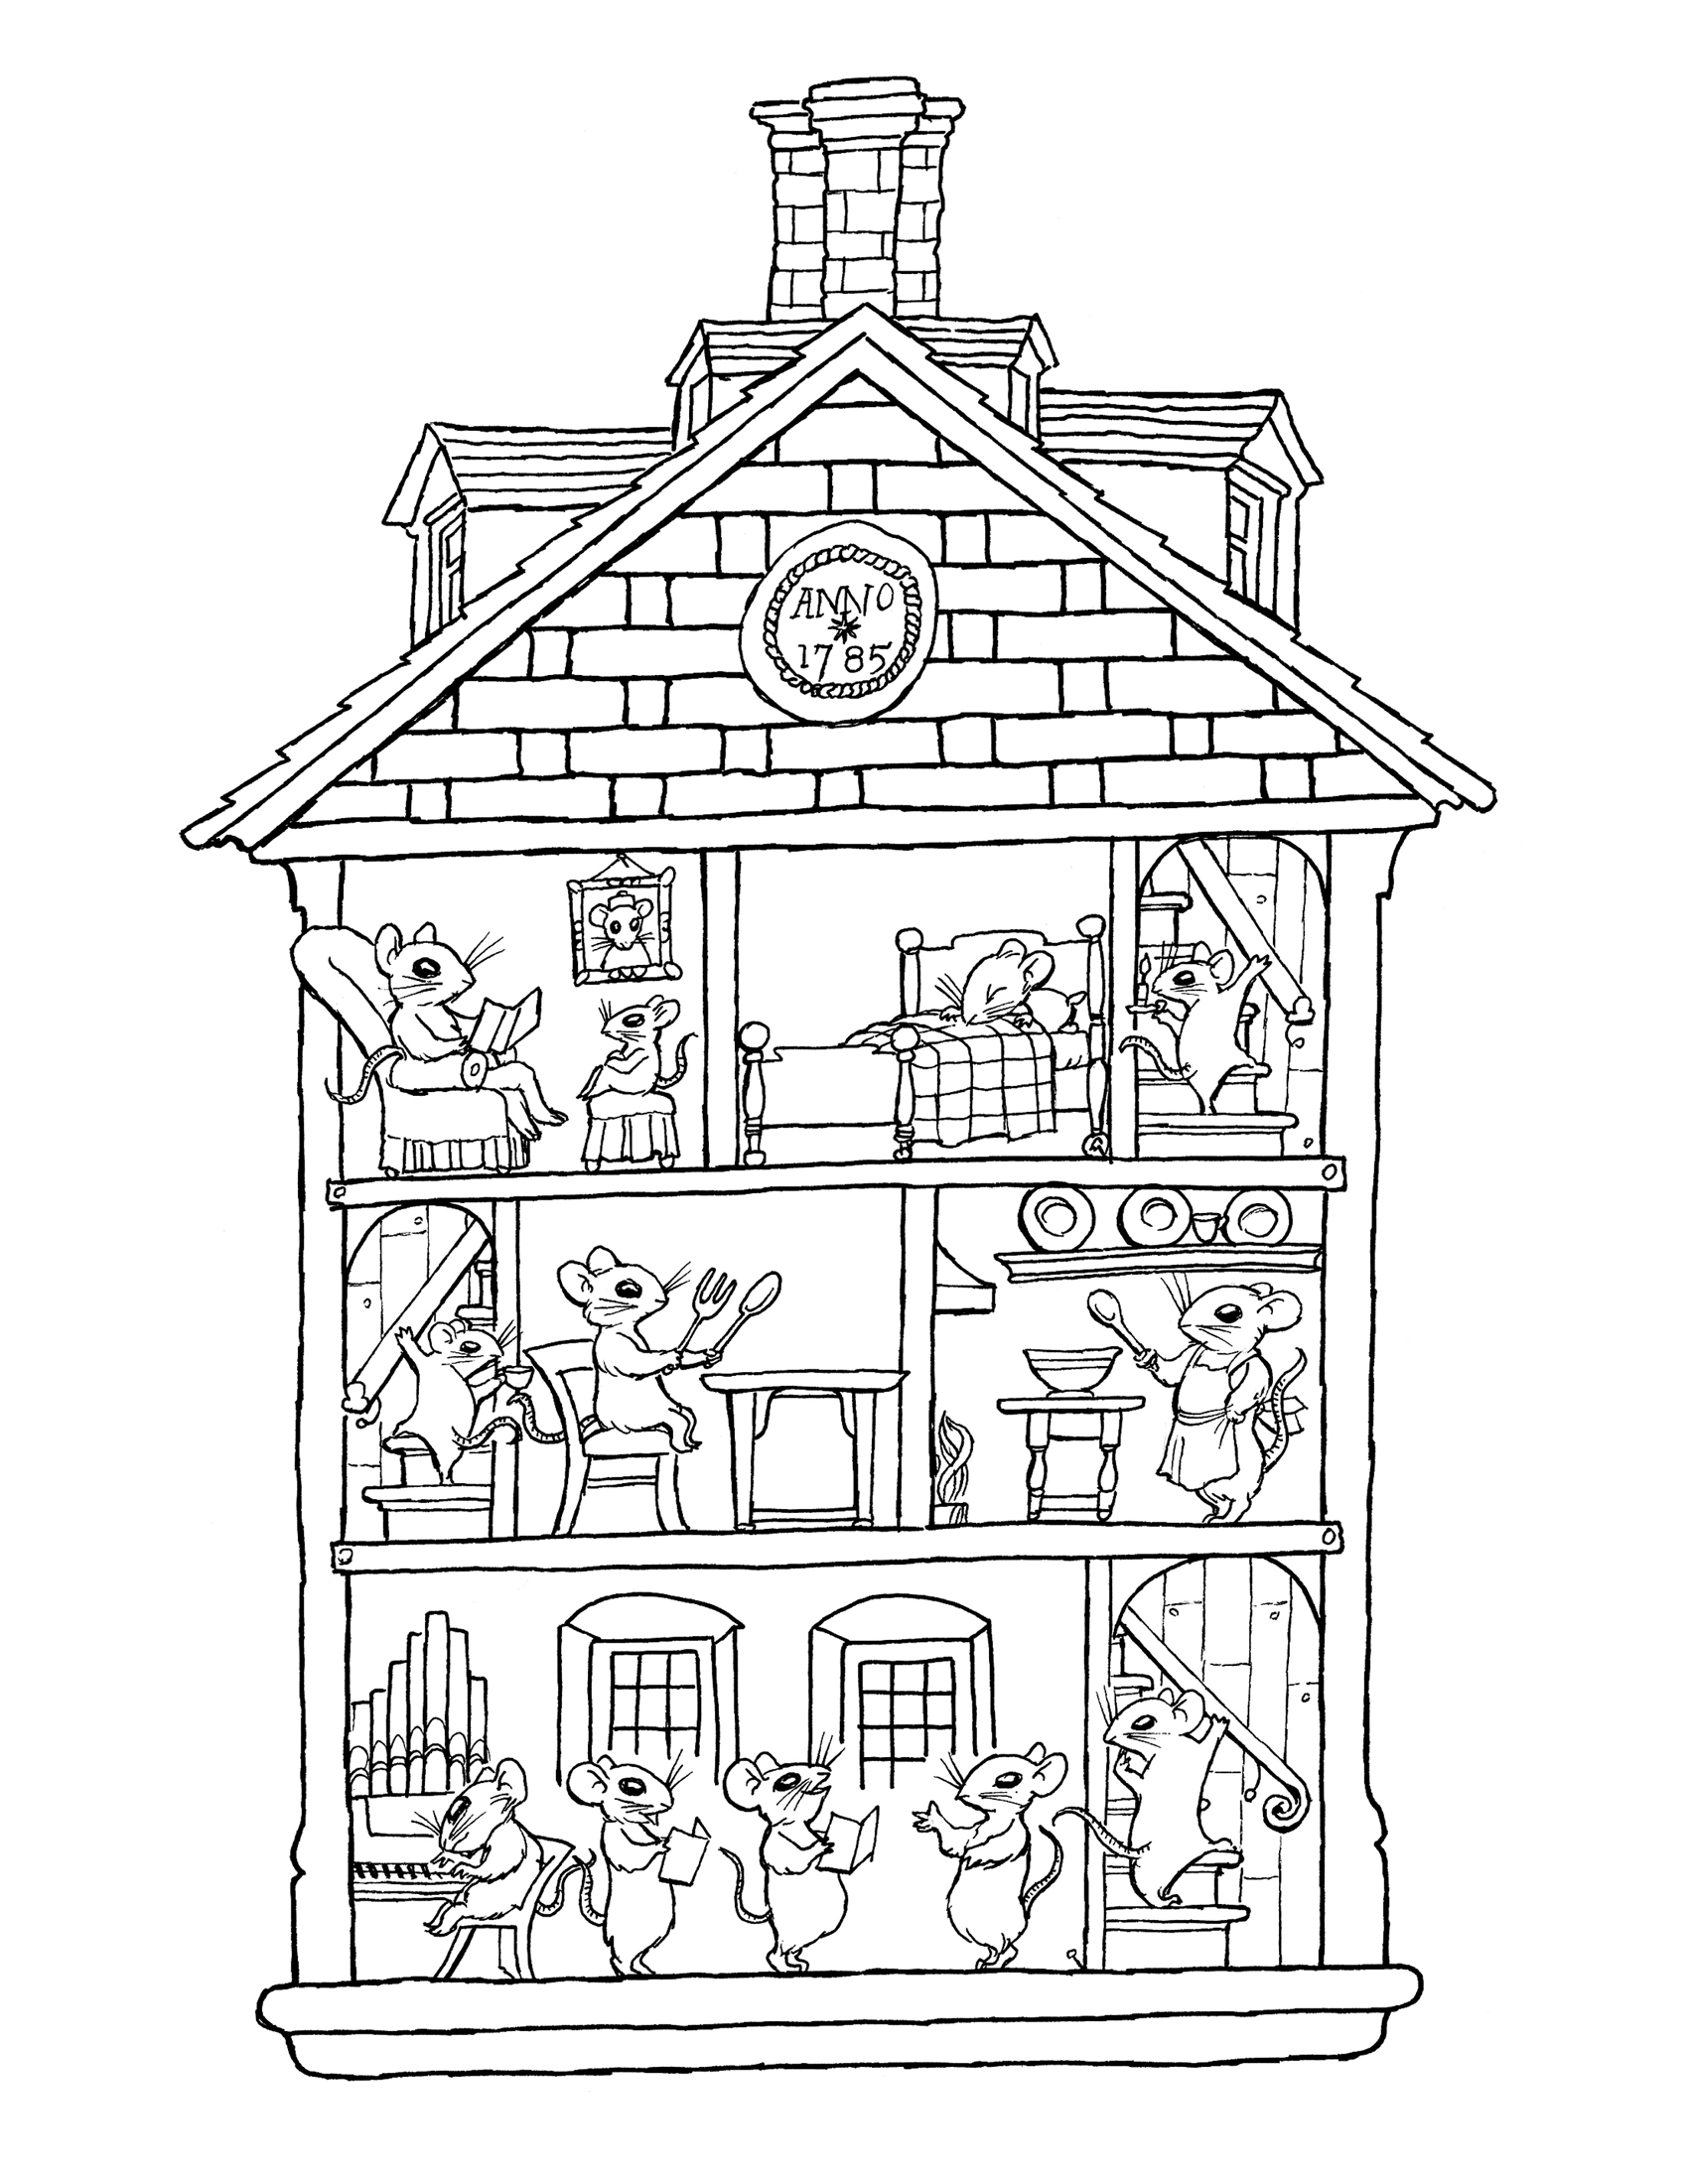 coloring pages of house house coloring pages to download and print for free house coloring of pages